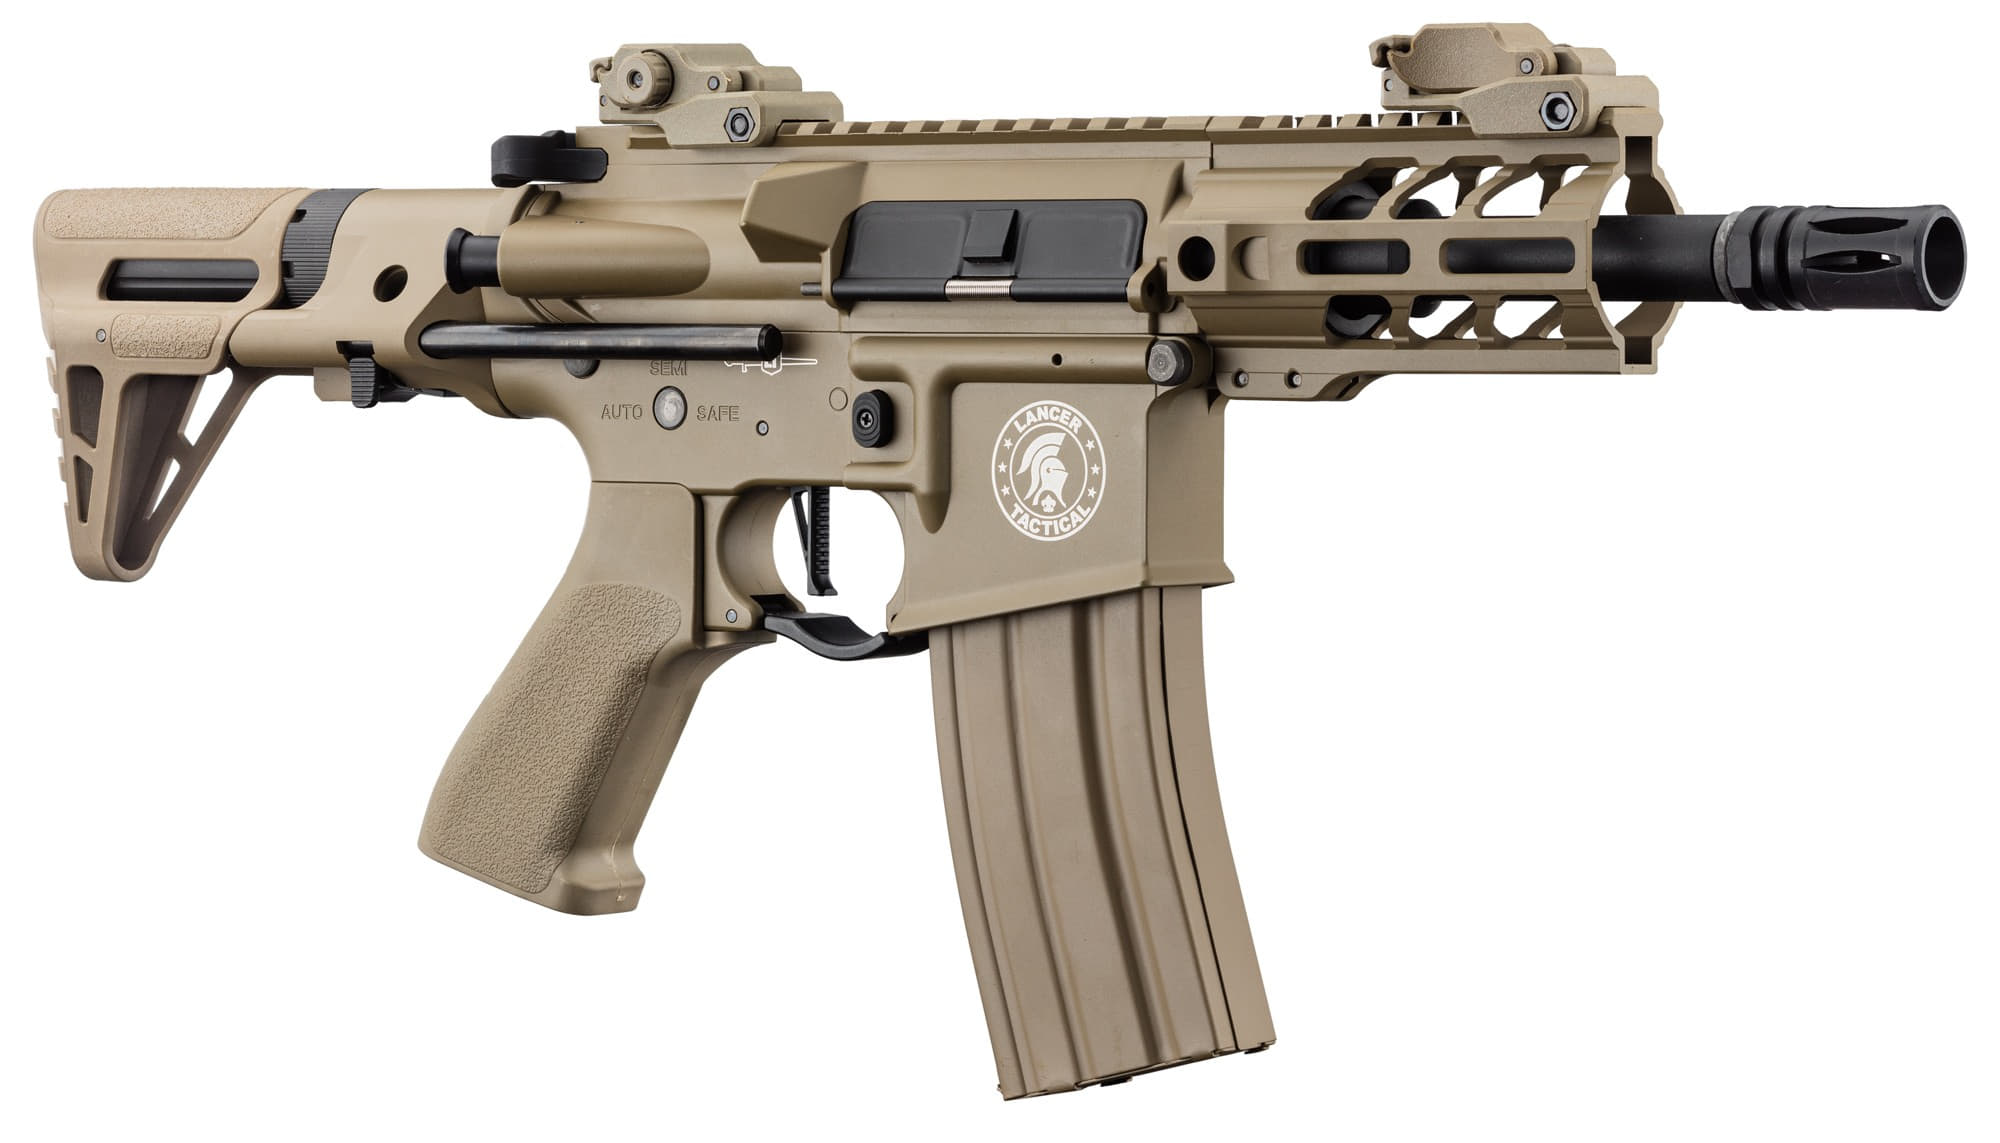 LK9077-1 Réplique AEG LT-34 Proline GEN2 Enforcer Battle Hawk PDW 4' tan - CLK9000